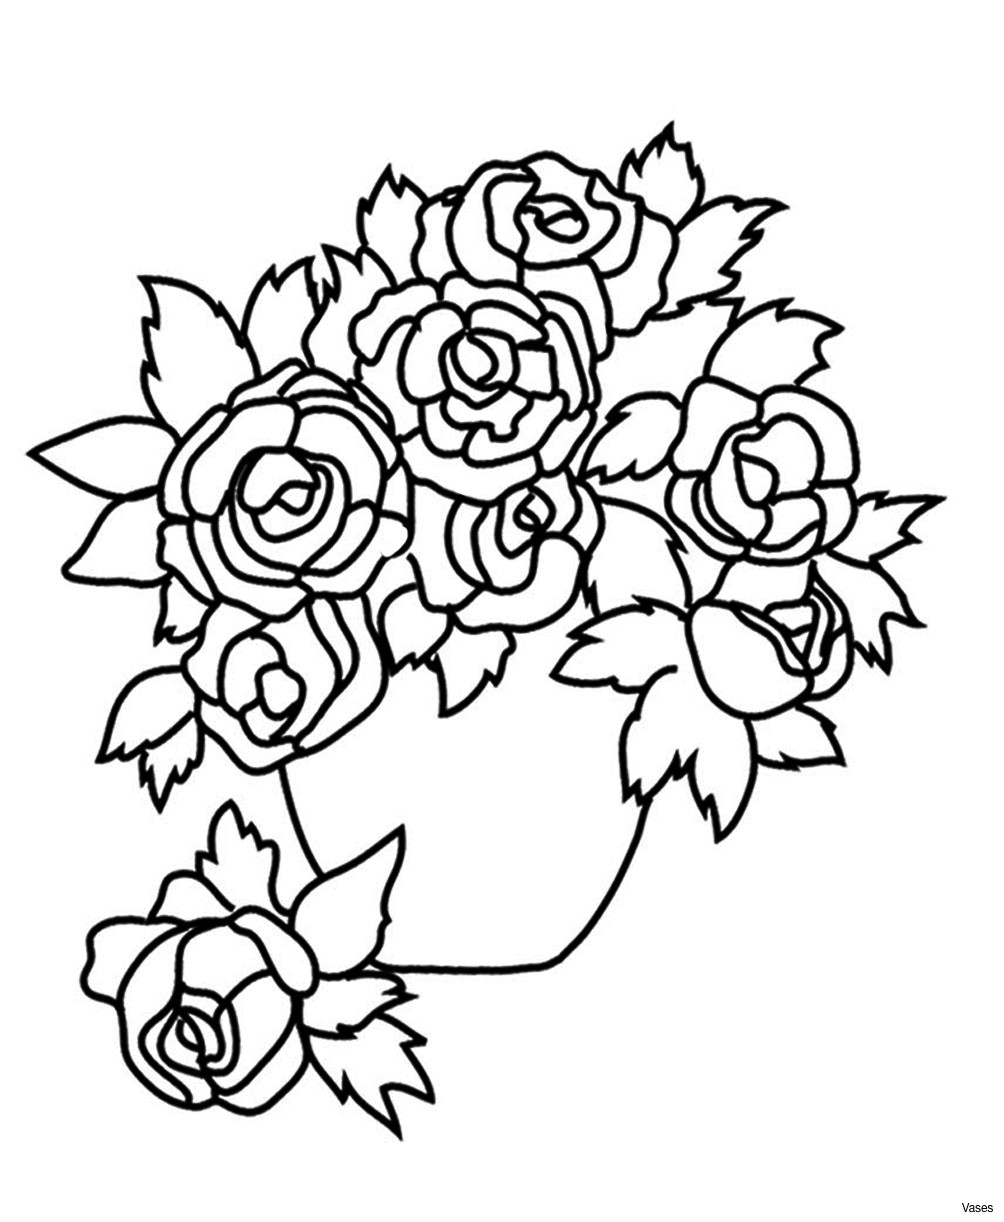 vase floral designs of awesome best vases flower vase coloring page pages flowers in a top with regard to awesome best vases flower vase coloring page pages flowers in a top i 0d